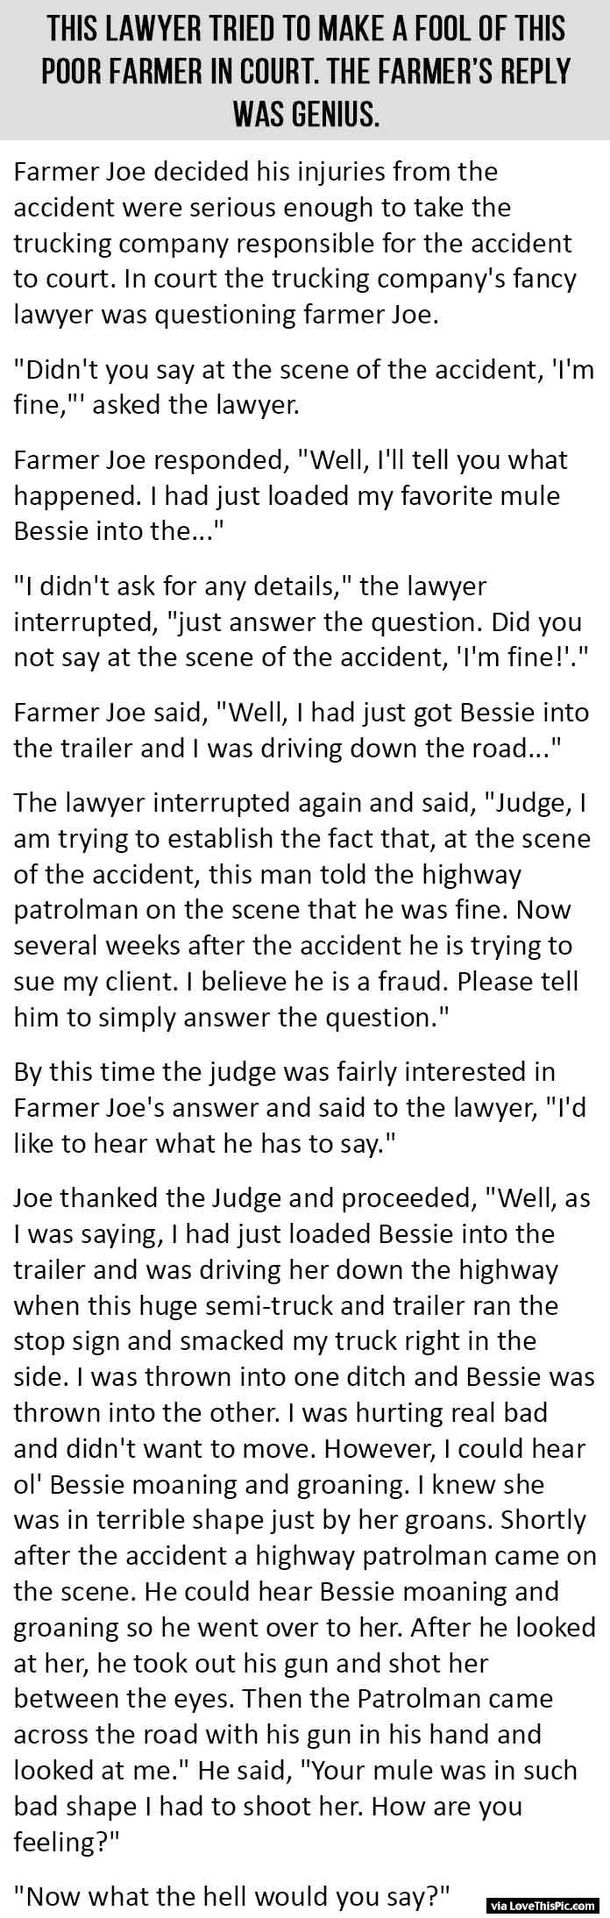 This Lawyer Tried To Make A Fool Of This Poor Farmer In Court But The Farmer's Reply Is Priceless